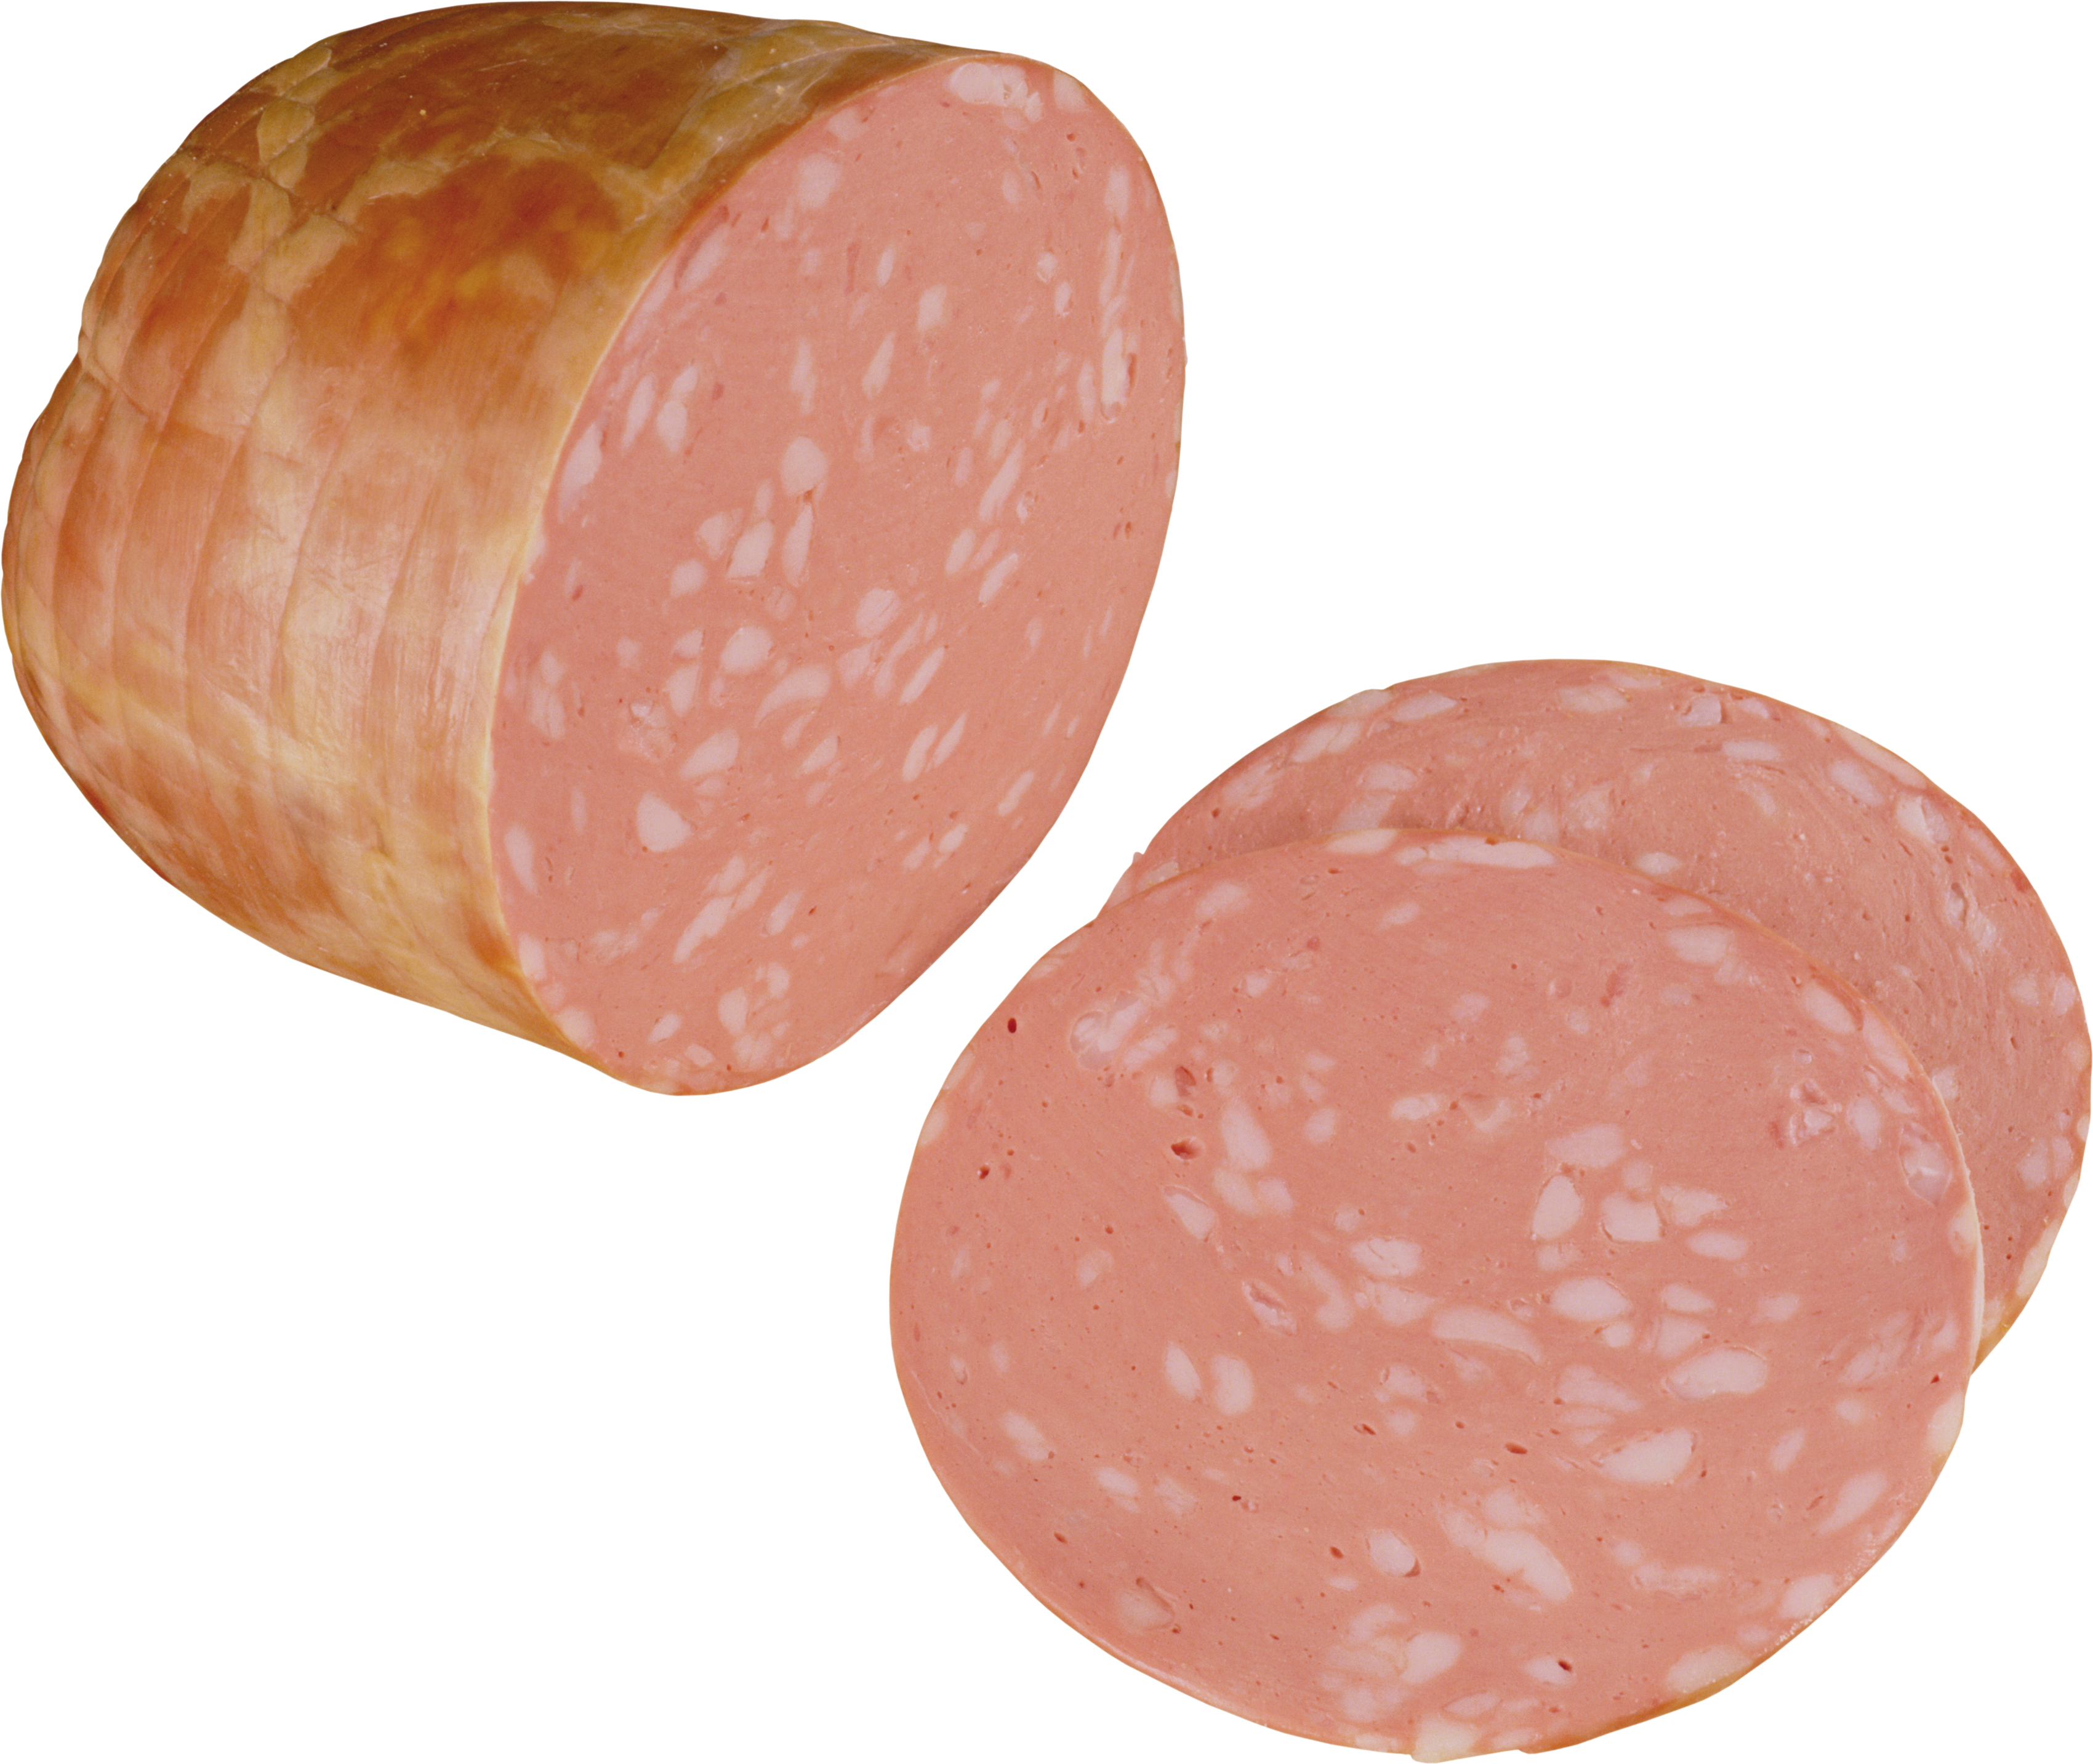 Sausage, Coiled, Cooked, Edible, Sausage, Grill, Salami, Png Image